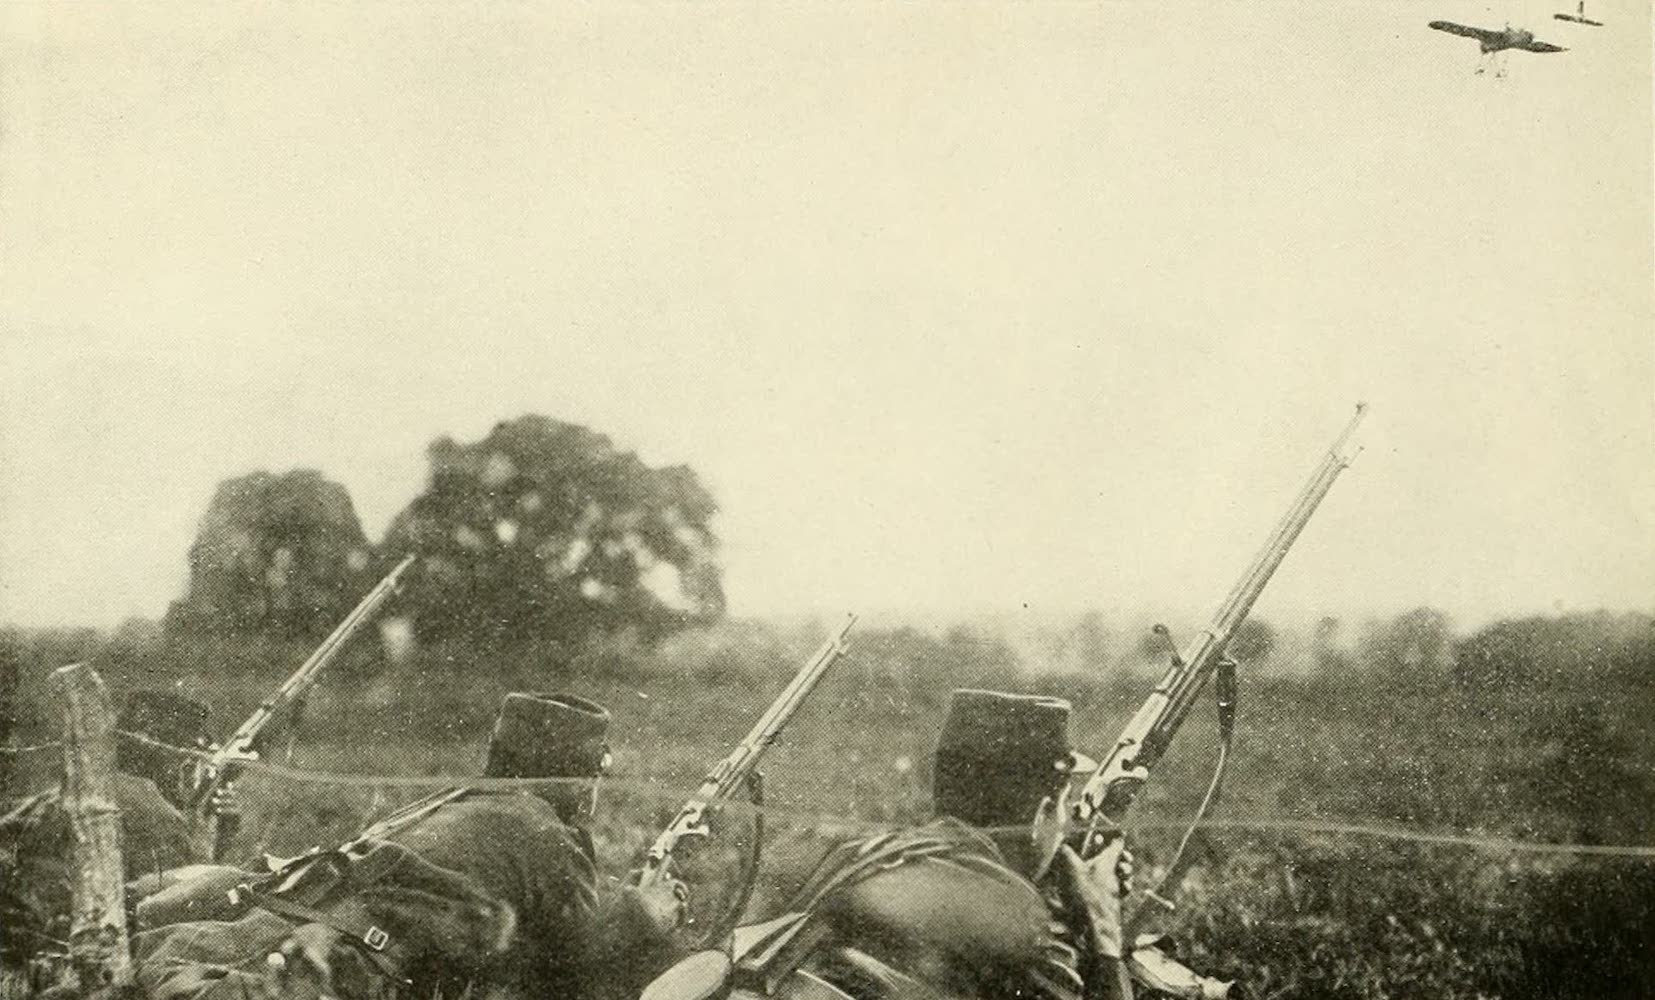 Laird & Lee's World's War Glimpses - Sky Spies Nearing French Ambush (1914)